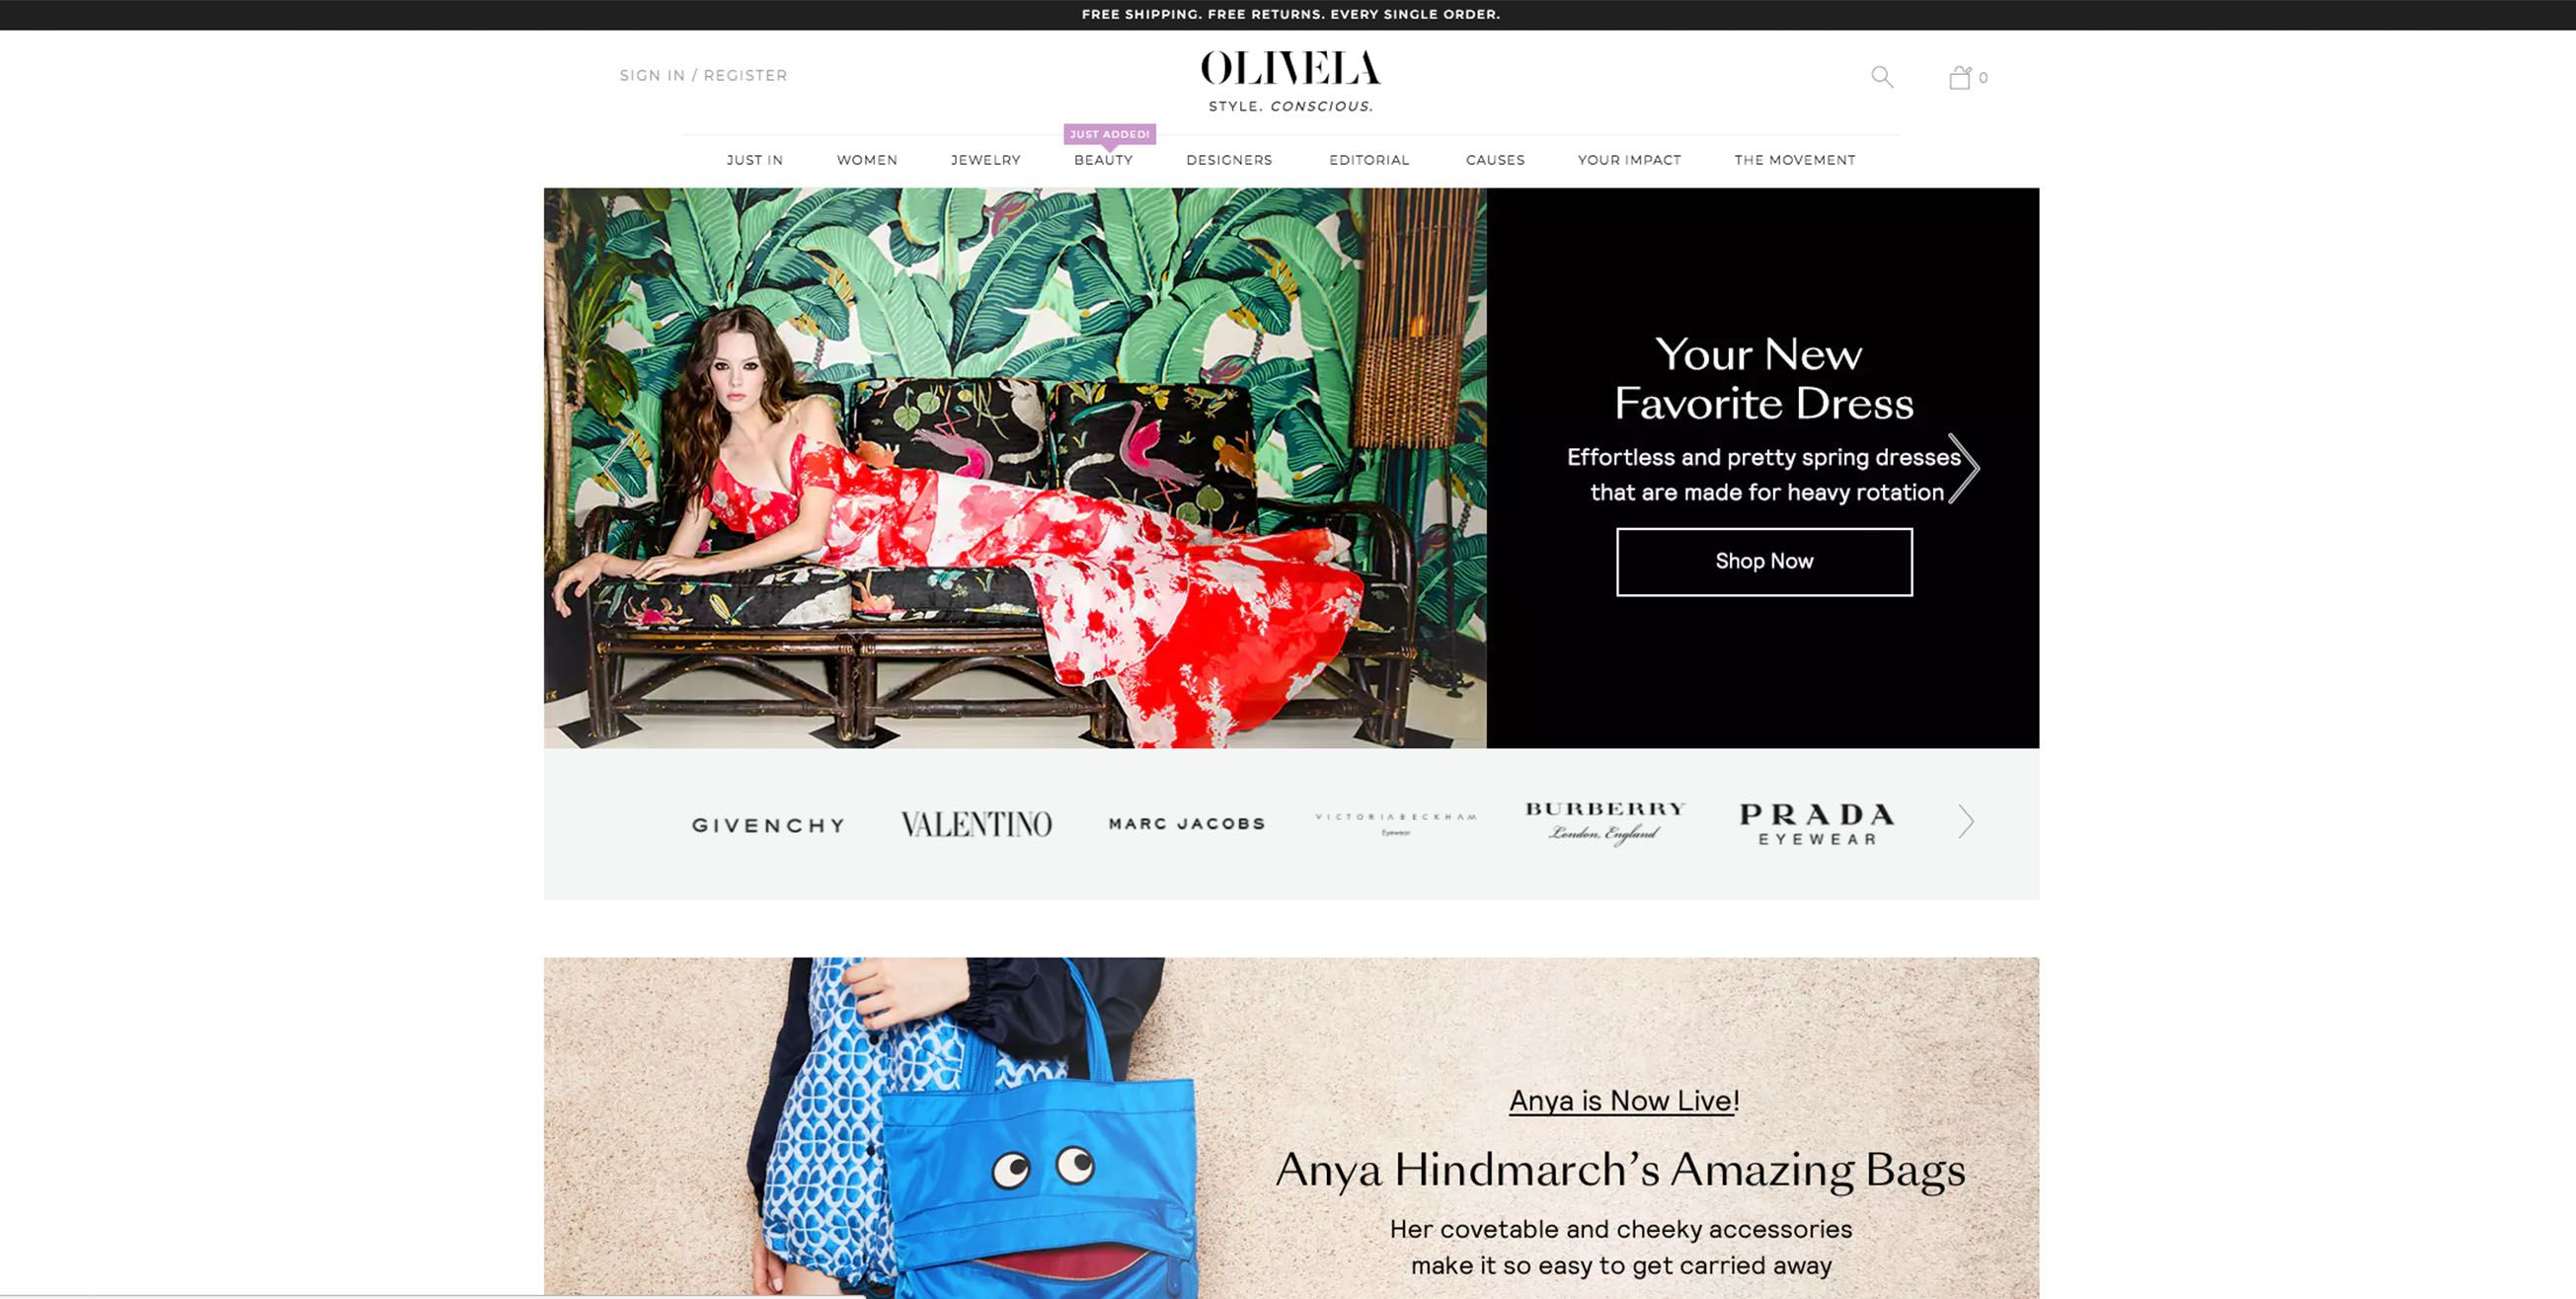 c37ab5c9d The Best Shopping Sites of 2018 - 15 New Shopping Sites to Waste Your Day On